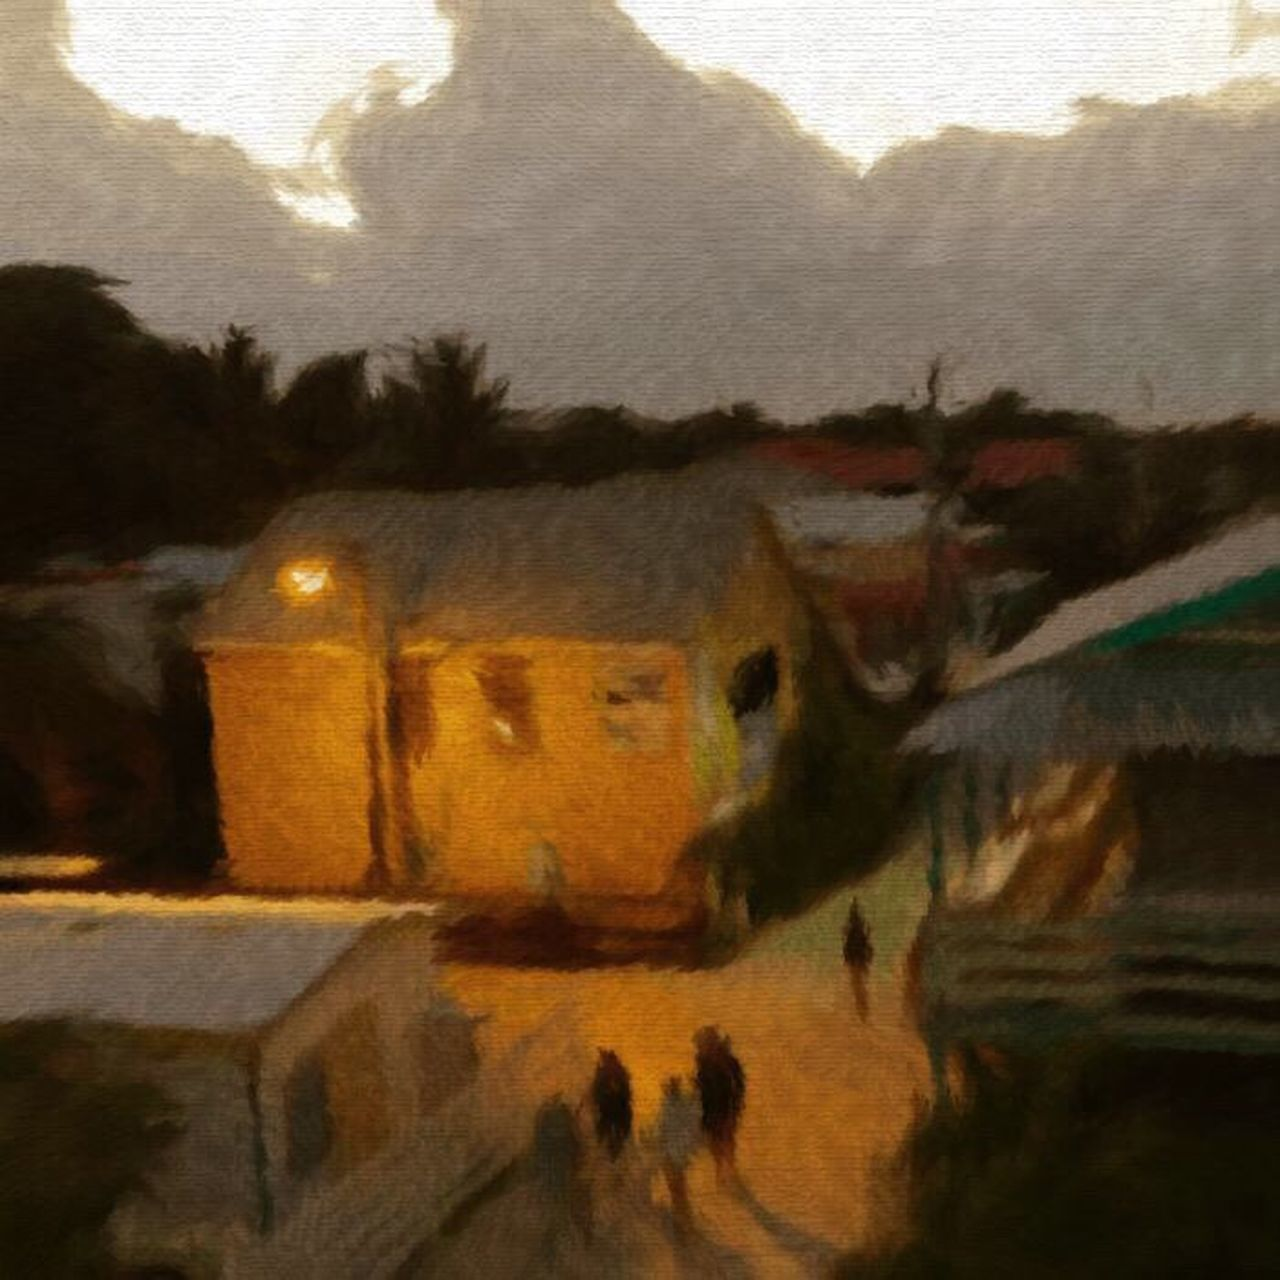 Twilight street from the rooftop , island style Light And Shadows Caye Caulker Just Hanging Out Night Life. Streetphoto OpenEdit impressionist